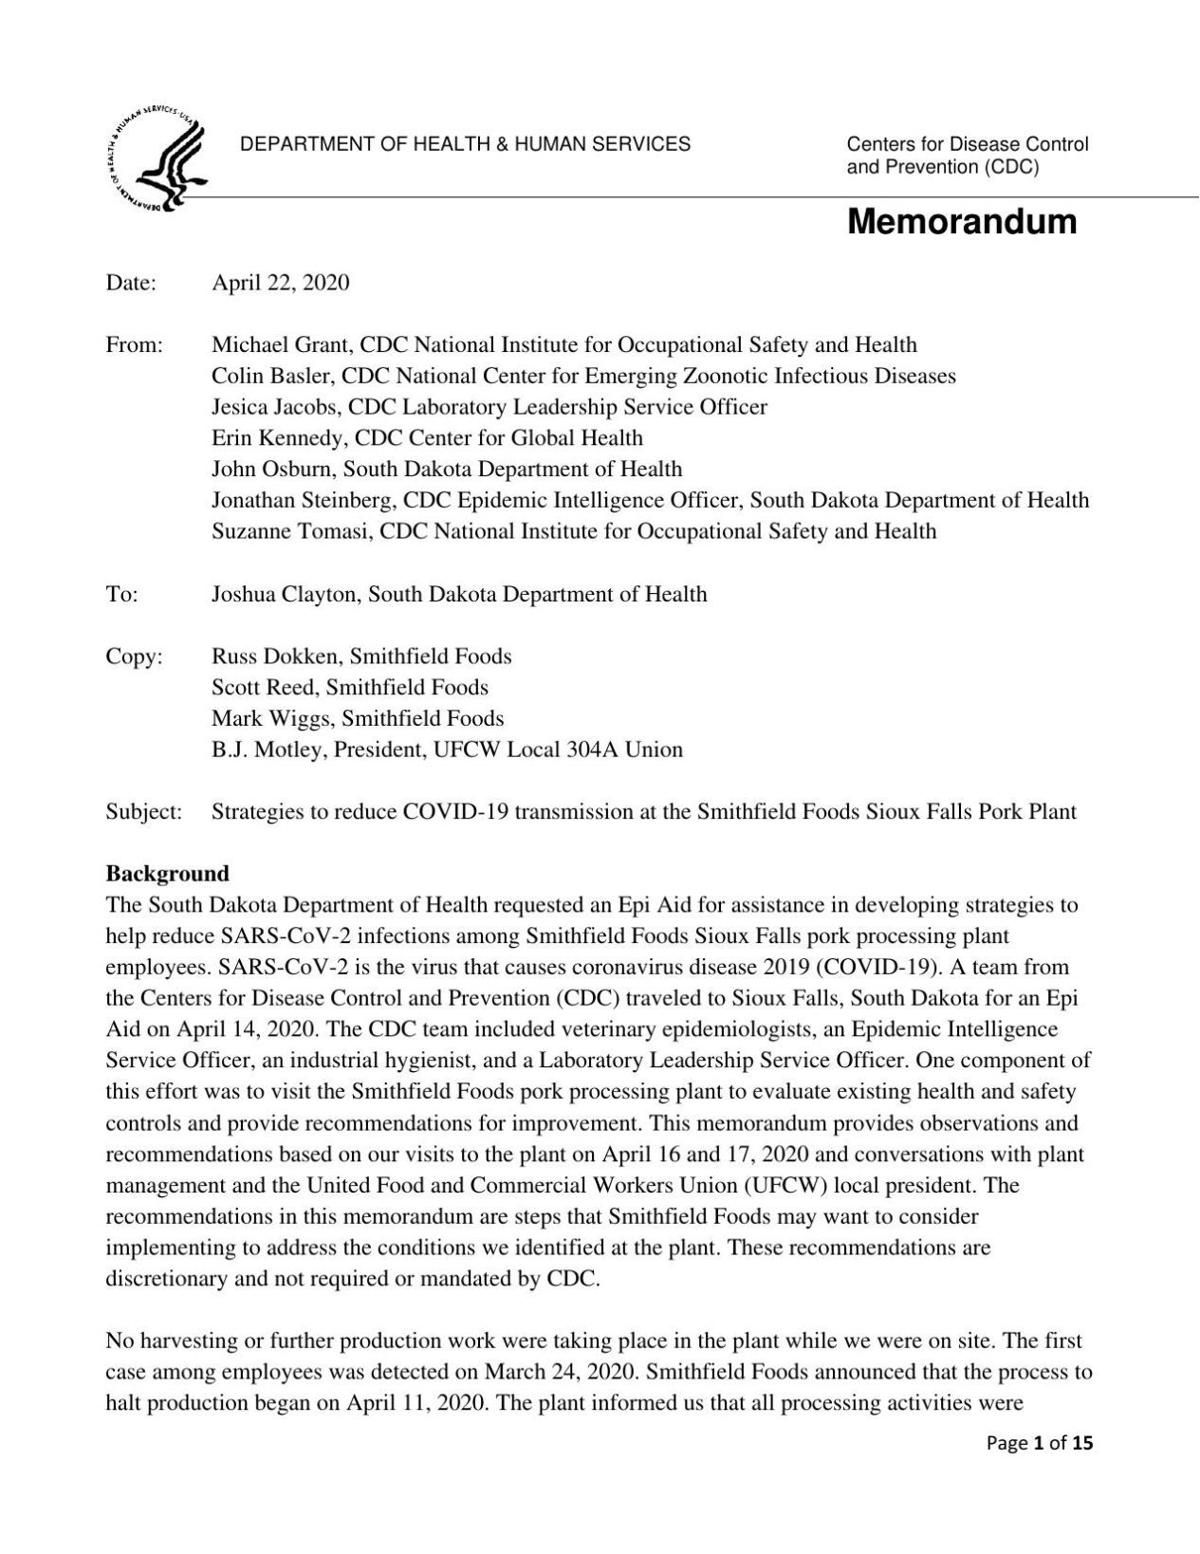 CDC releases report with recommendations to Smithfield on ...